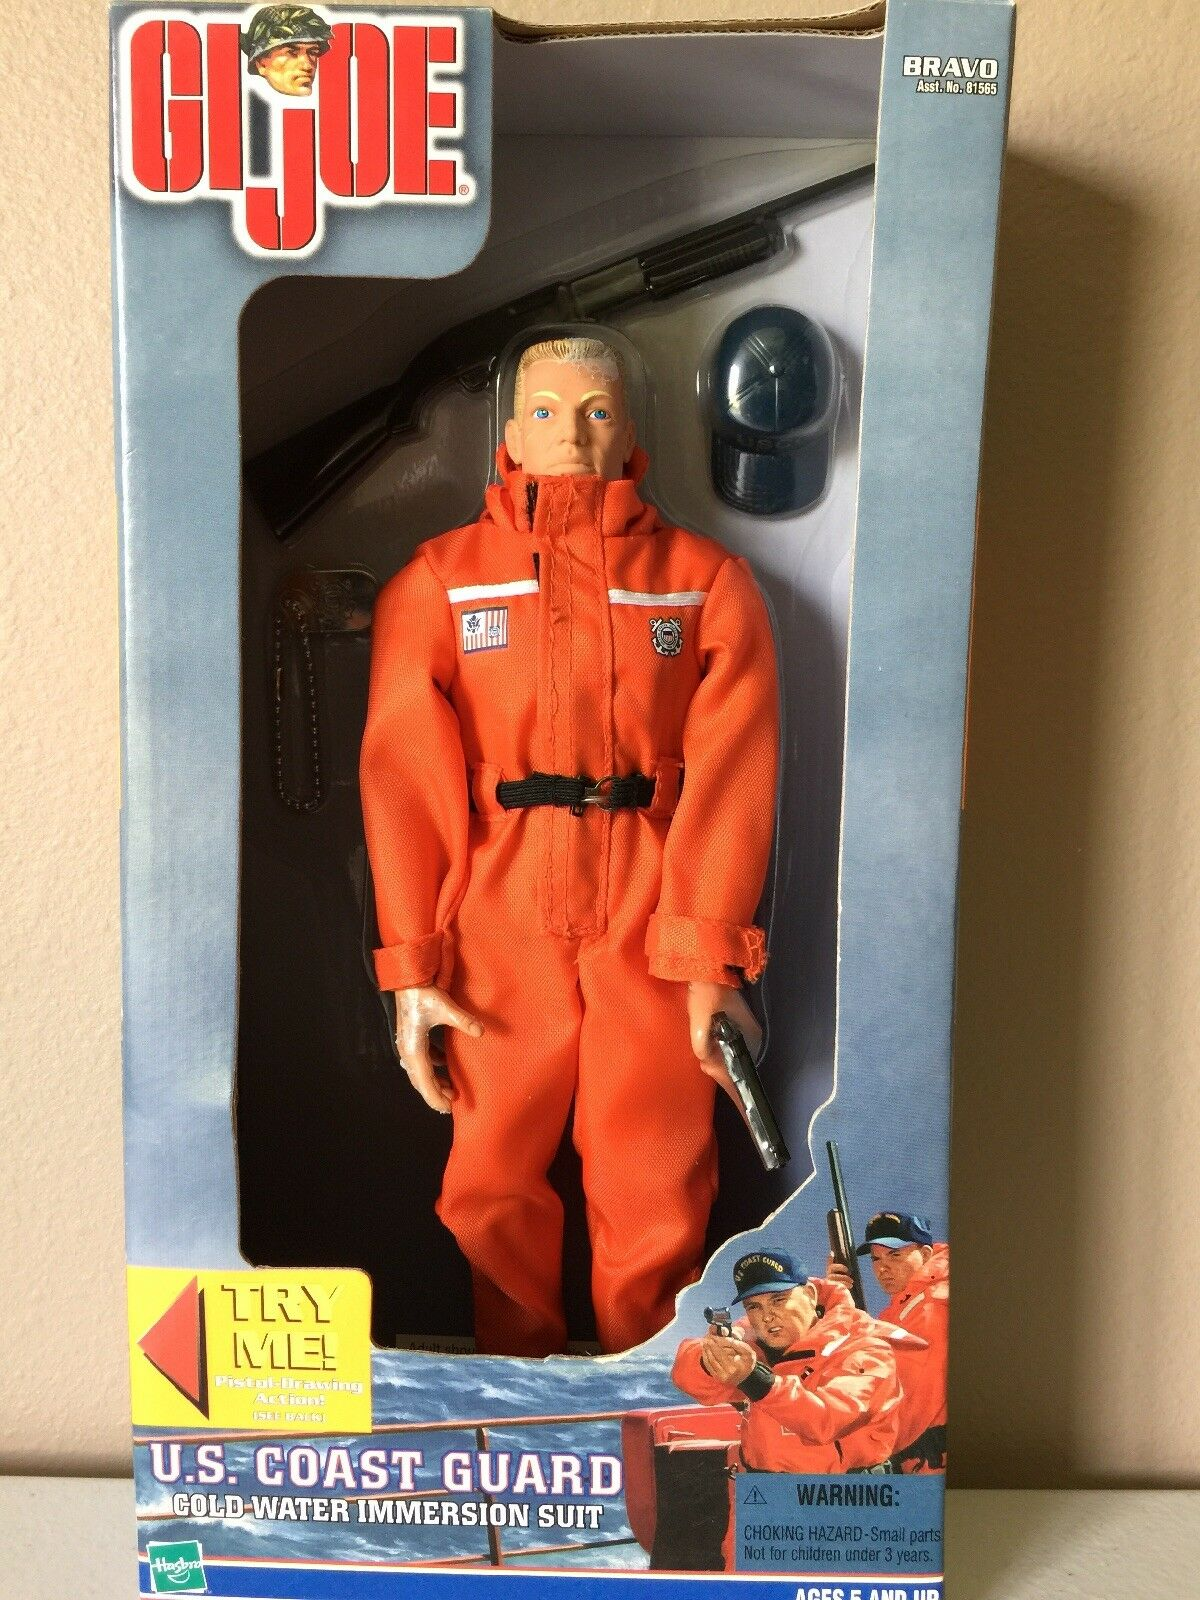 GI JOE U.S. COAST GUARD IN GREAT CONDITION.